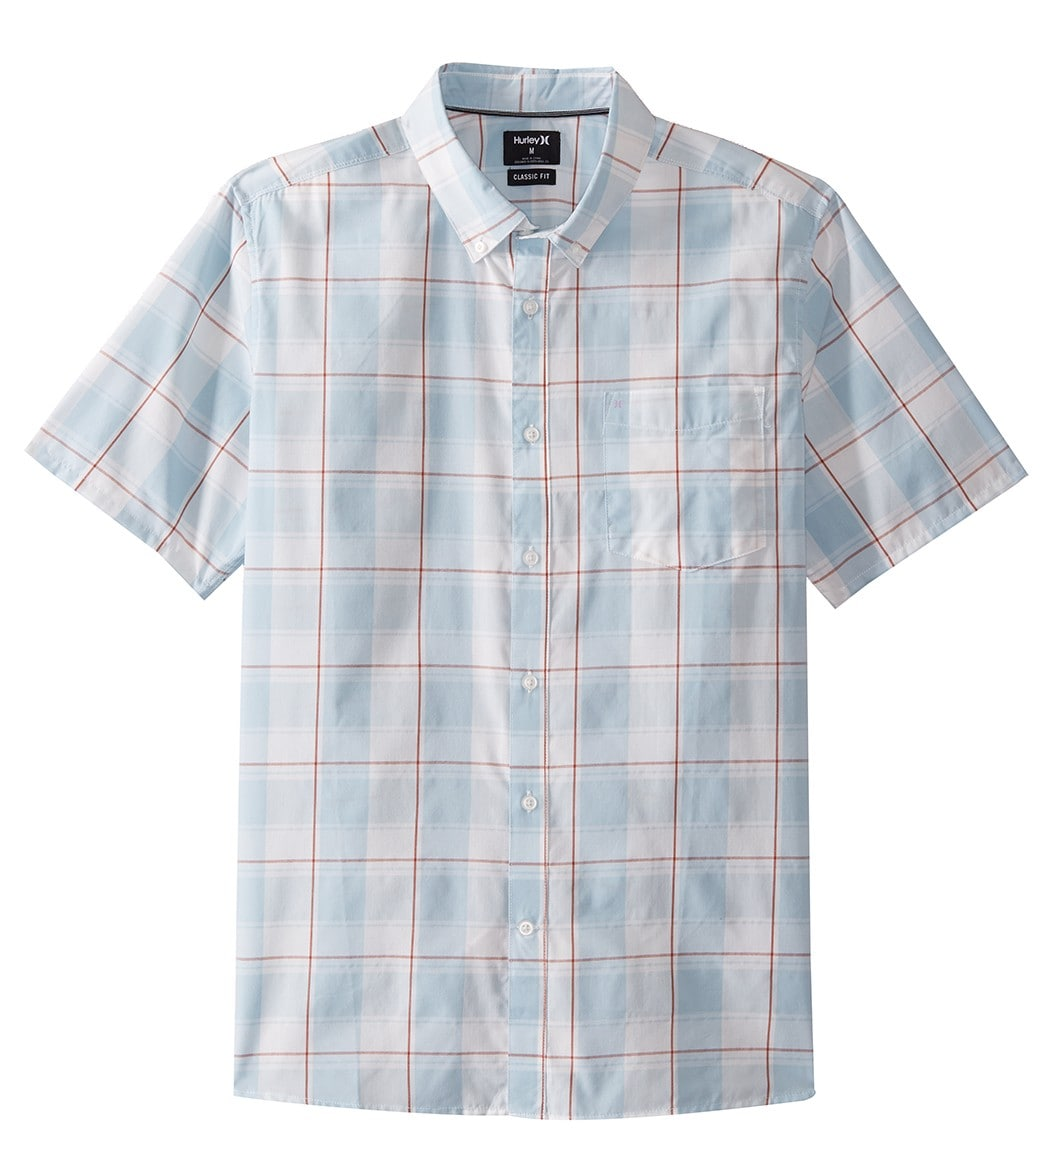 3a94988739 Hurley Men s Dri-FIT Castell Short Sleeve Woven Shirt at SwimOutlet.com -  Free Shipping